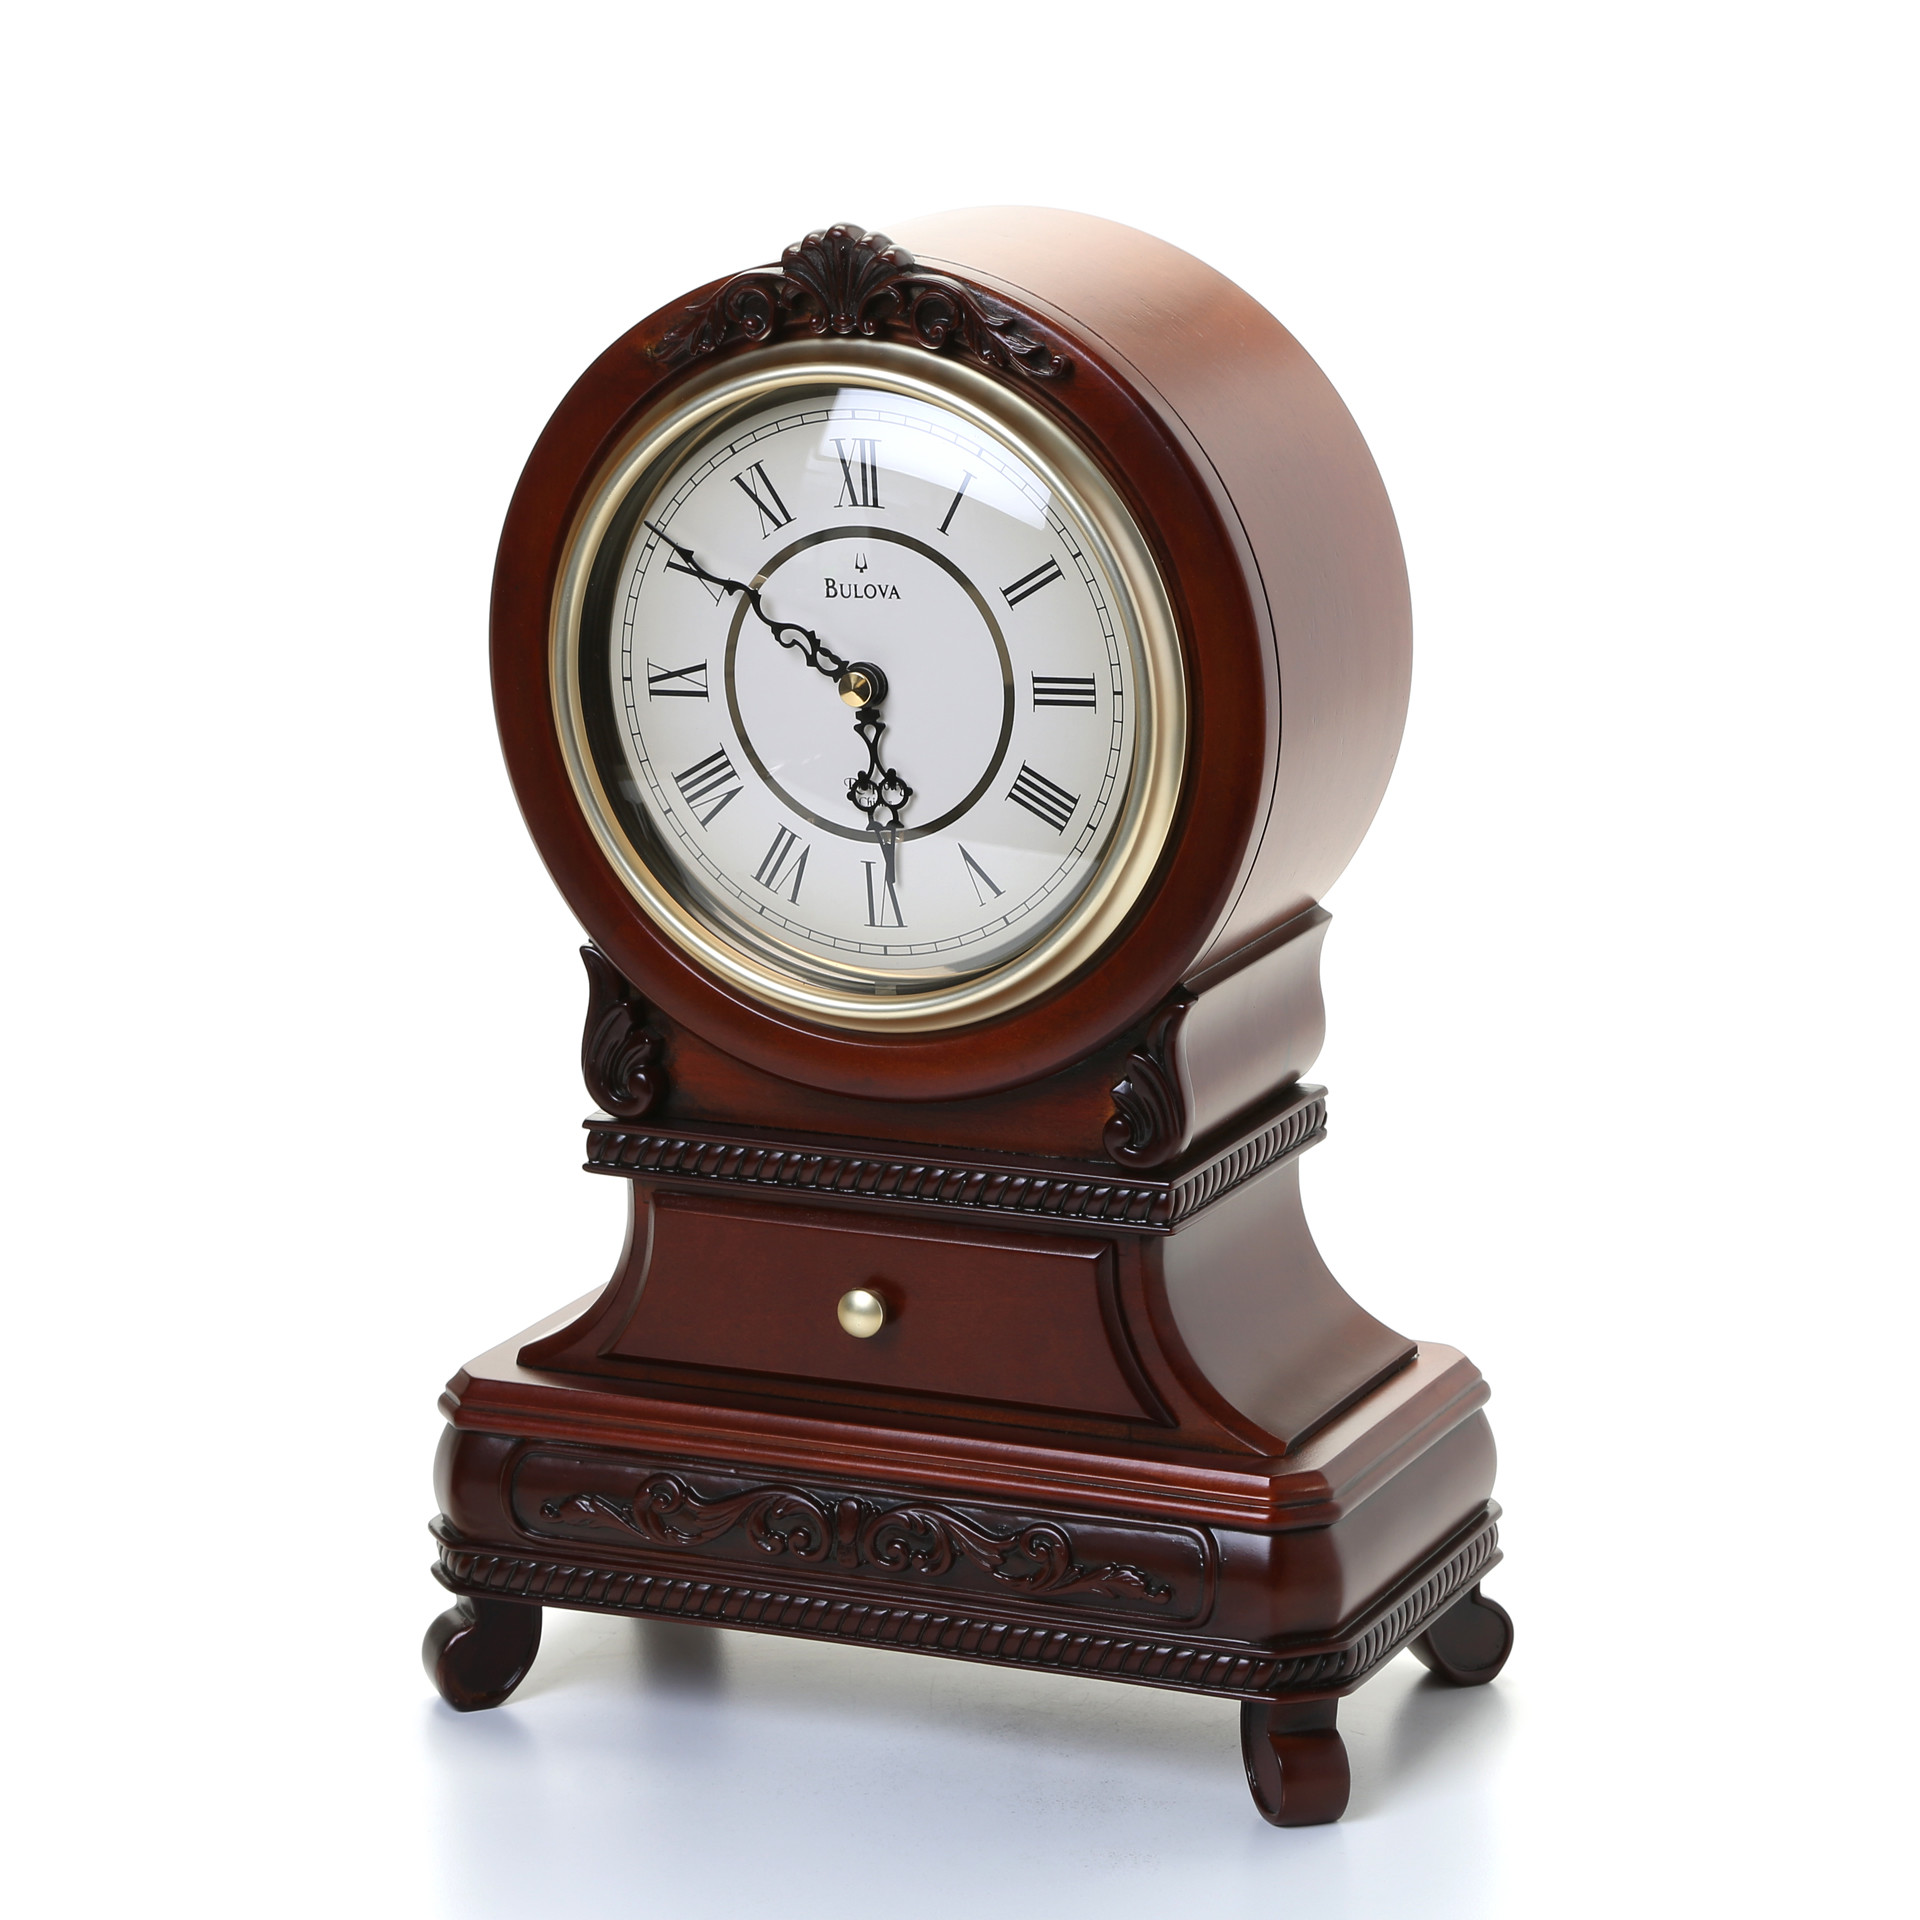 Glass Mantel Clocks | Bulova Mantel Clock | Bulova Mantel Clock Price